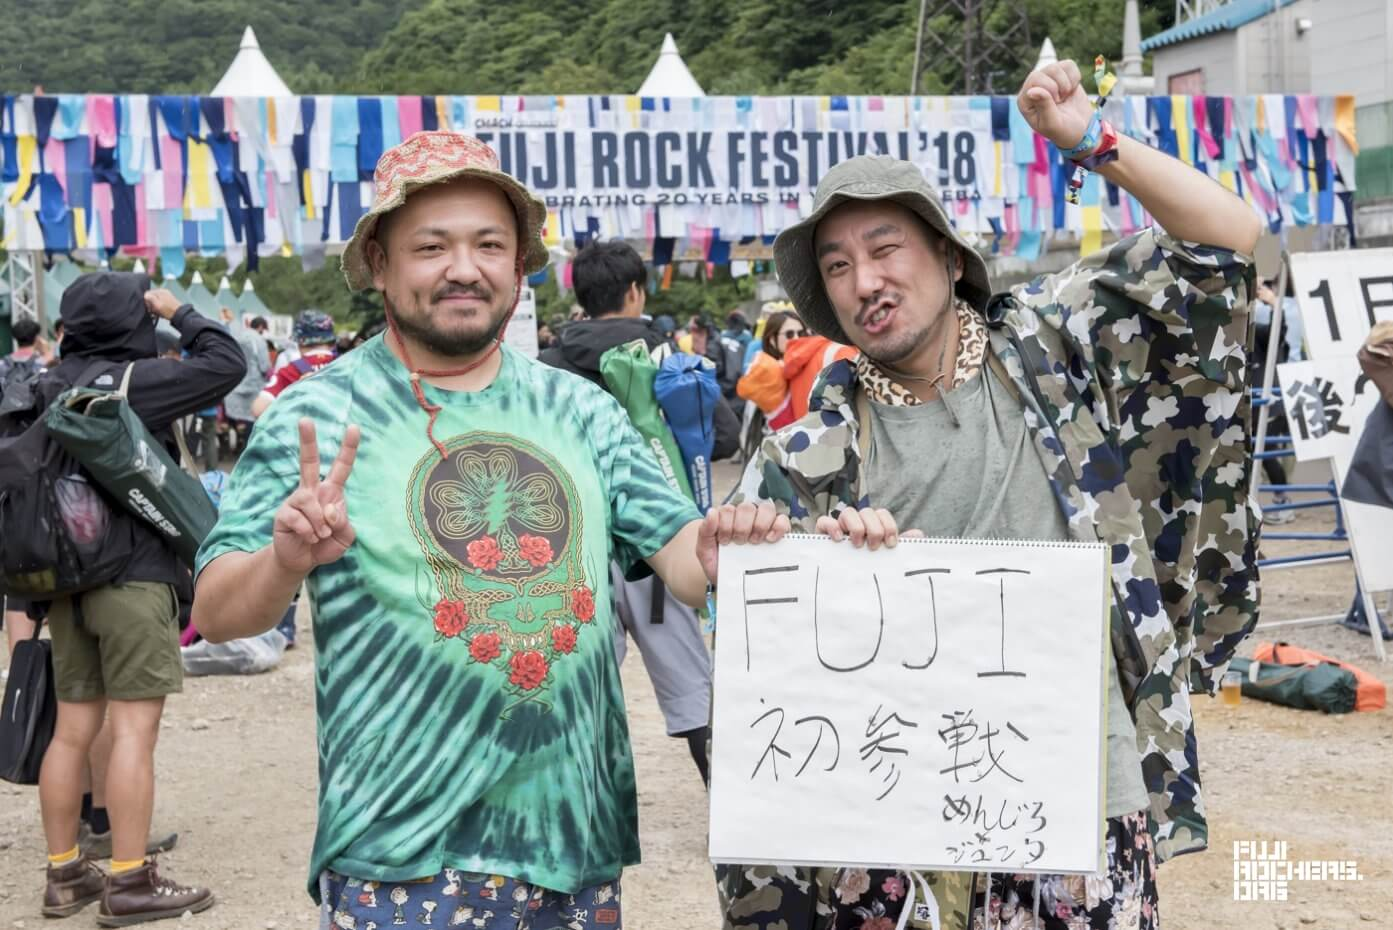 Message for Fujirock! 2018 #076